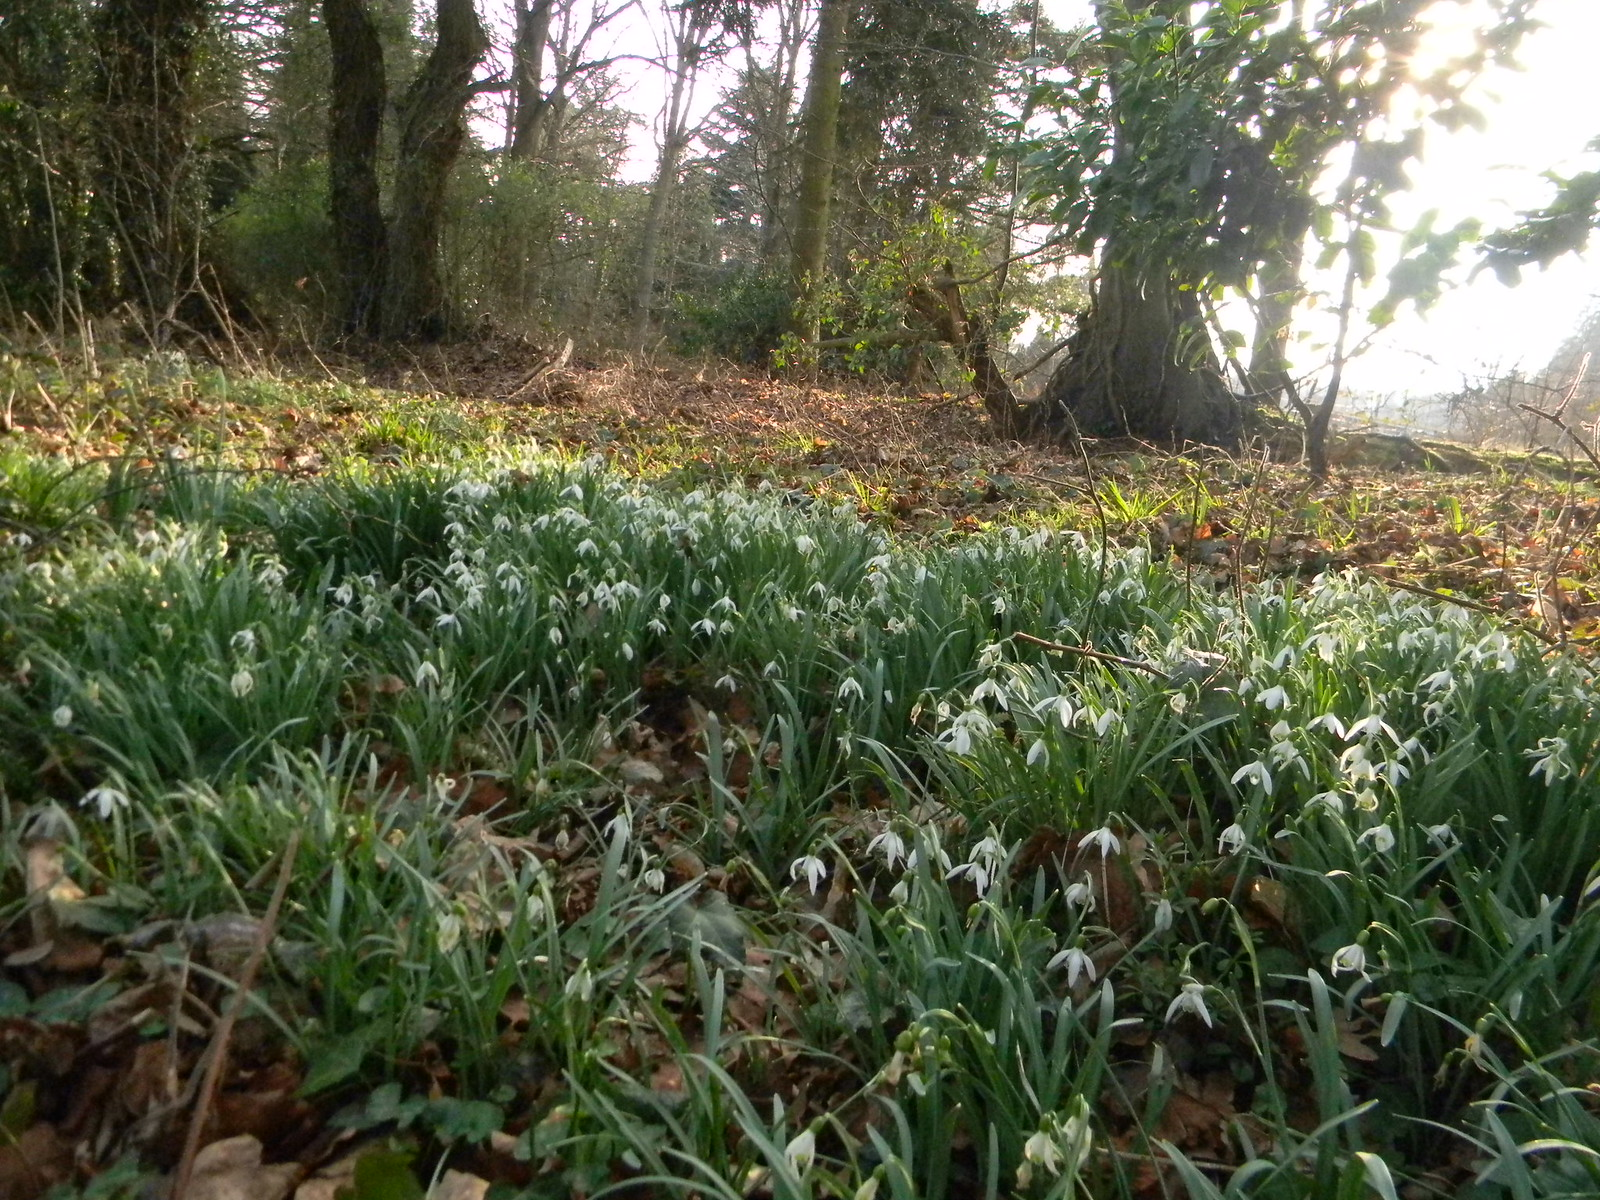 Snowdrops Robertsbridge to Battle